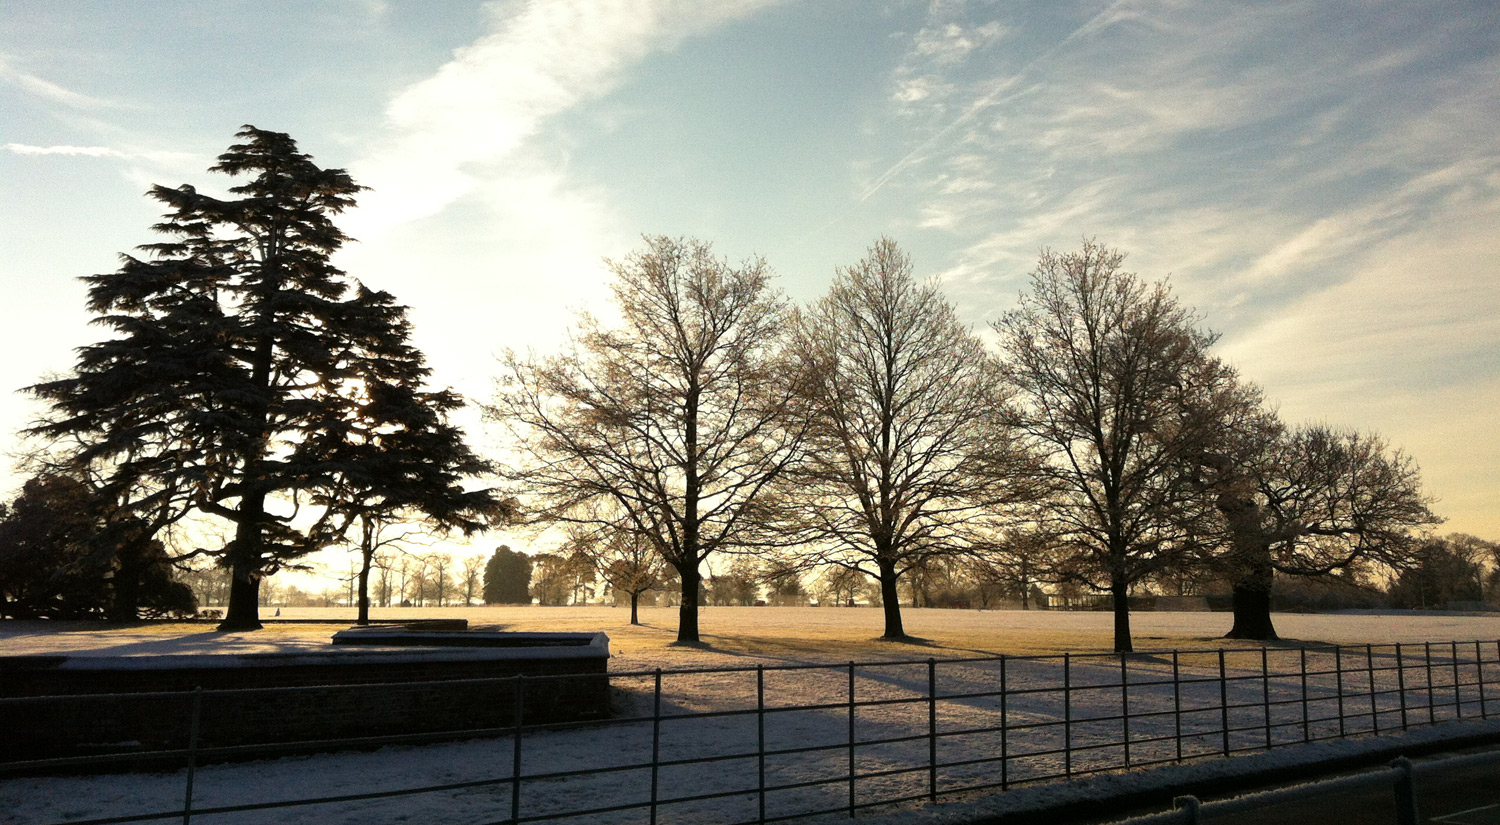 Winter morning at Wivenhoe Park